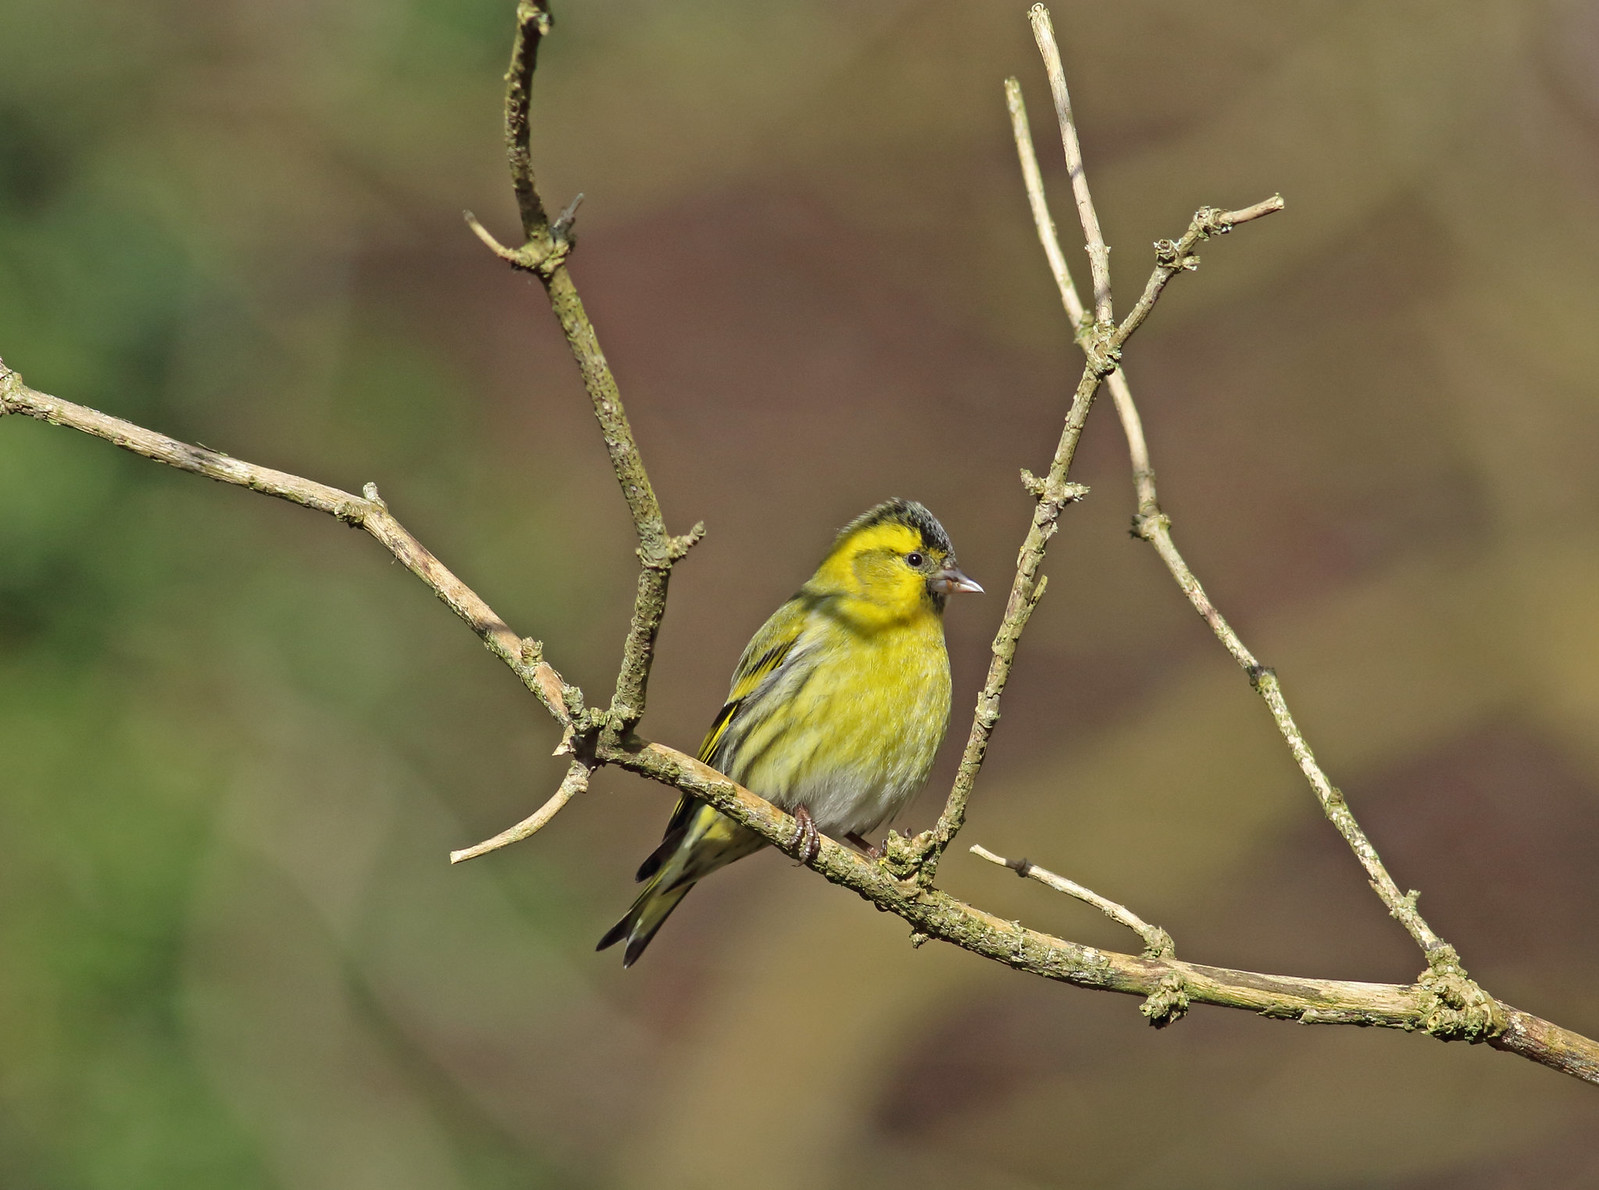 ajsteele-siskin-24-02-17-watercress